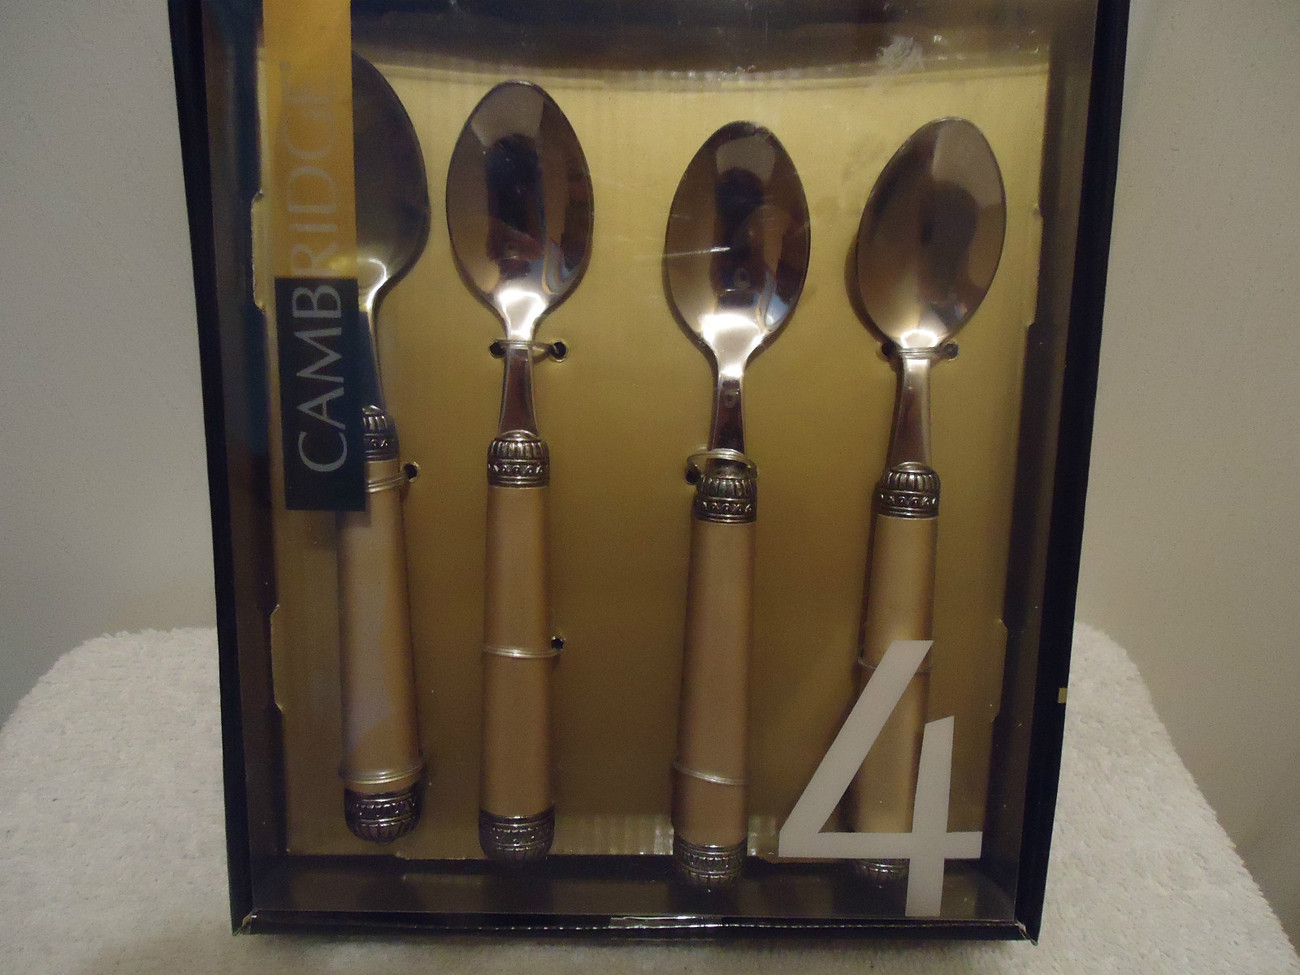 Cambridge Set of 4 Demitasse Spoons with 25 yr warranty